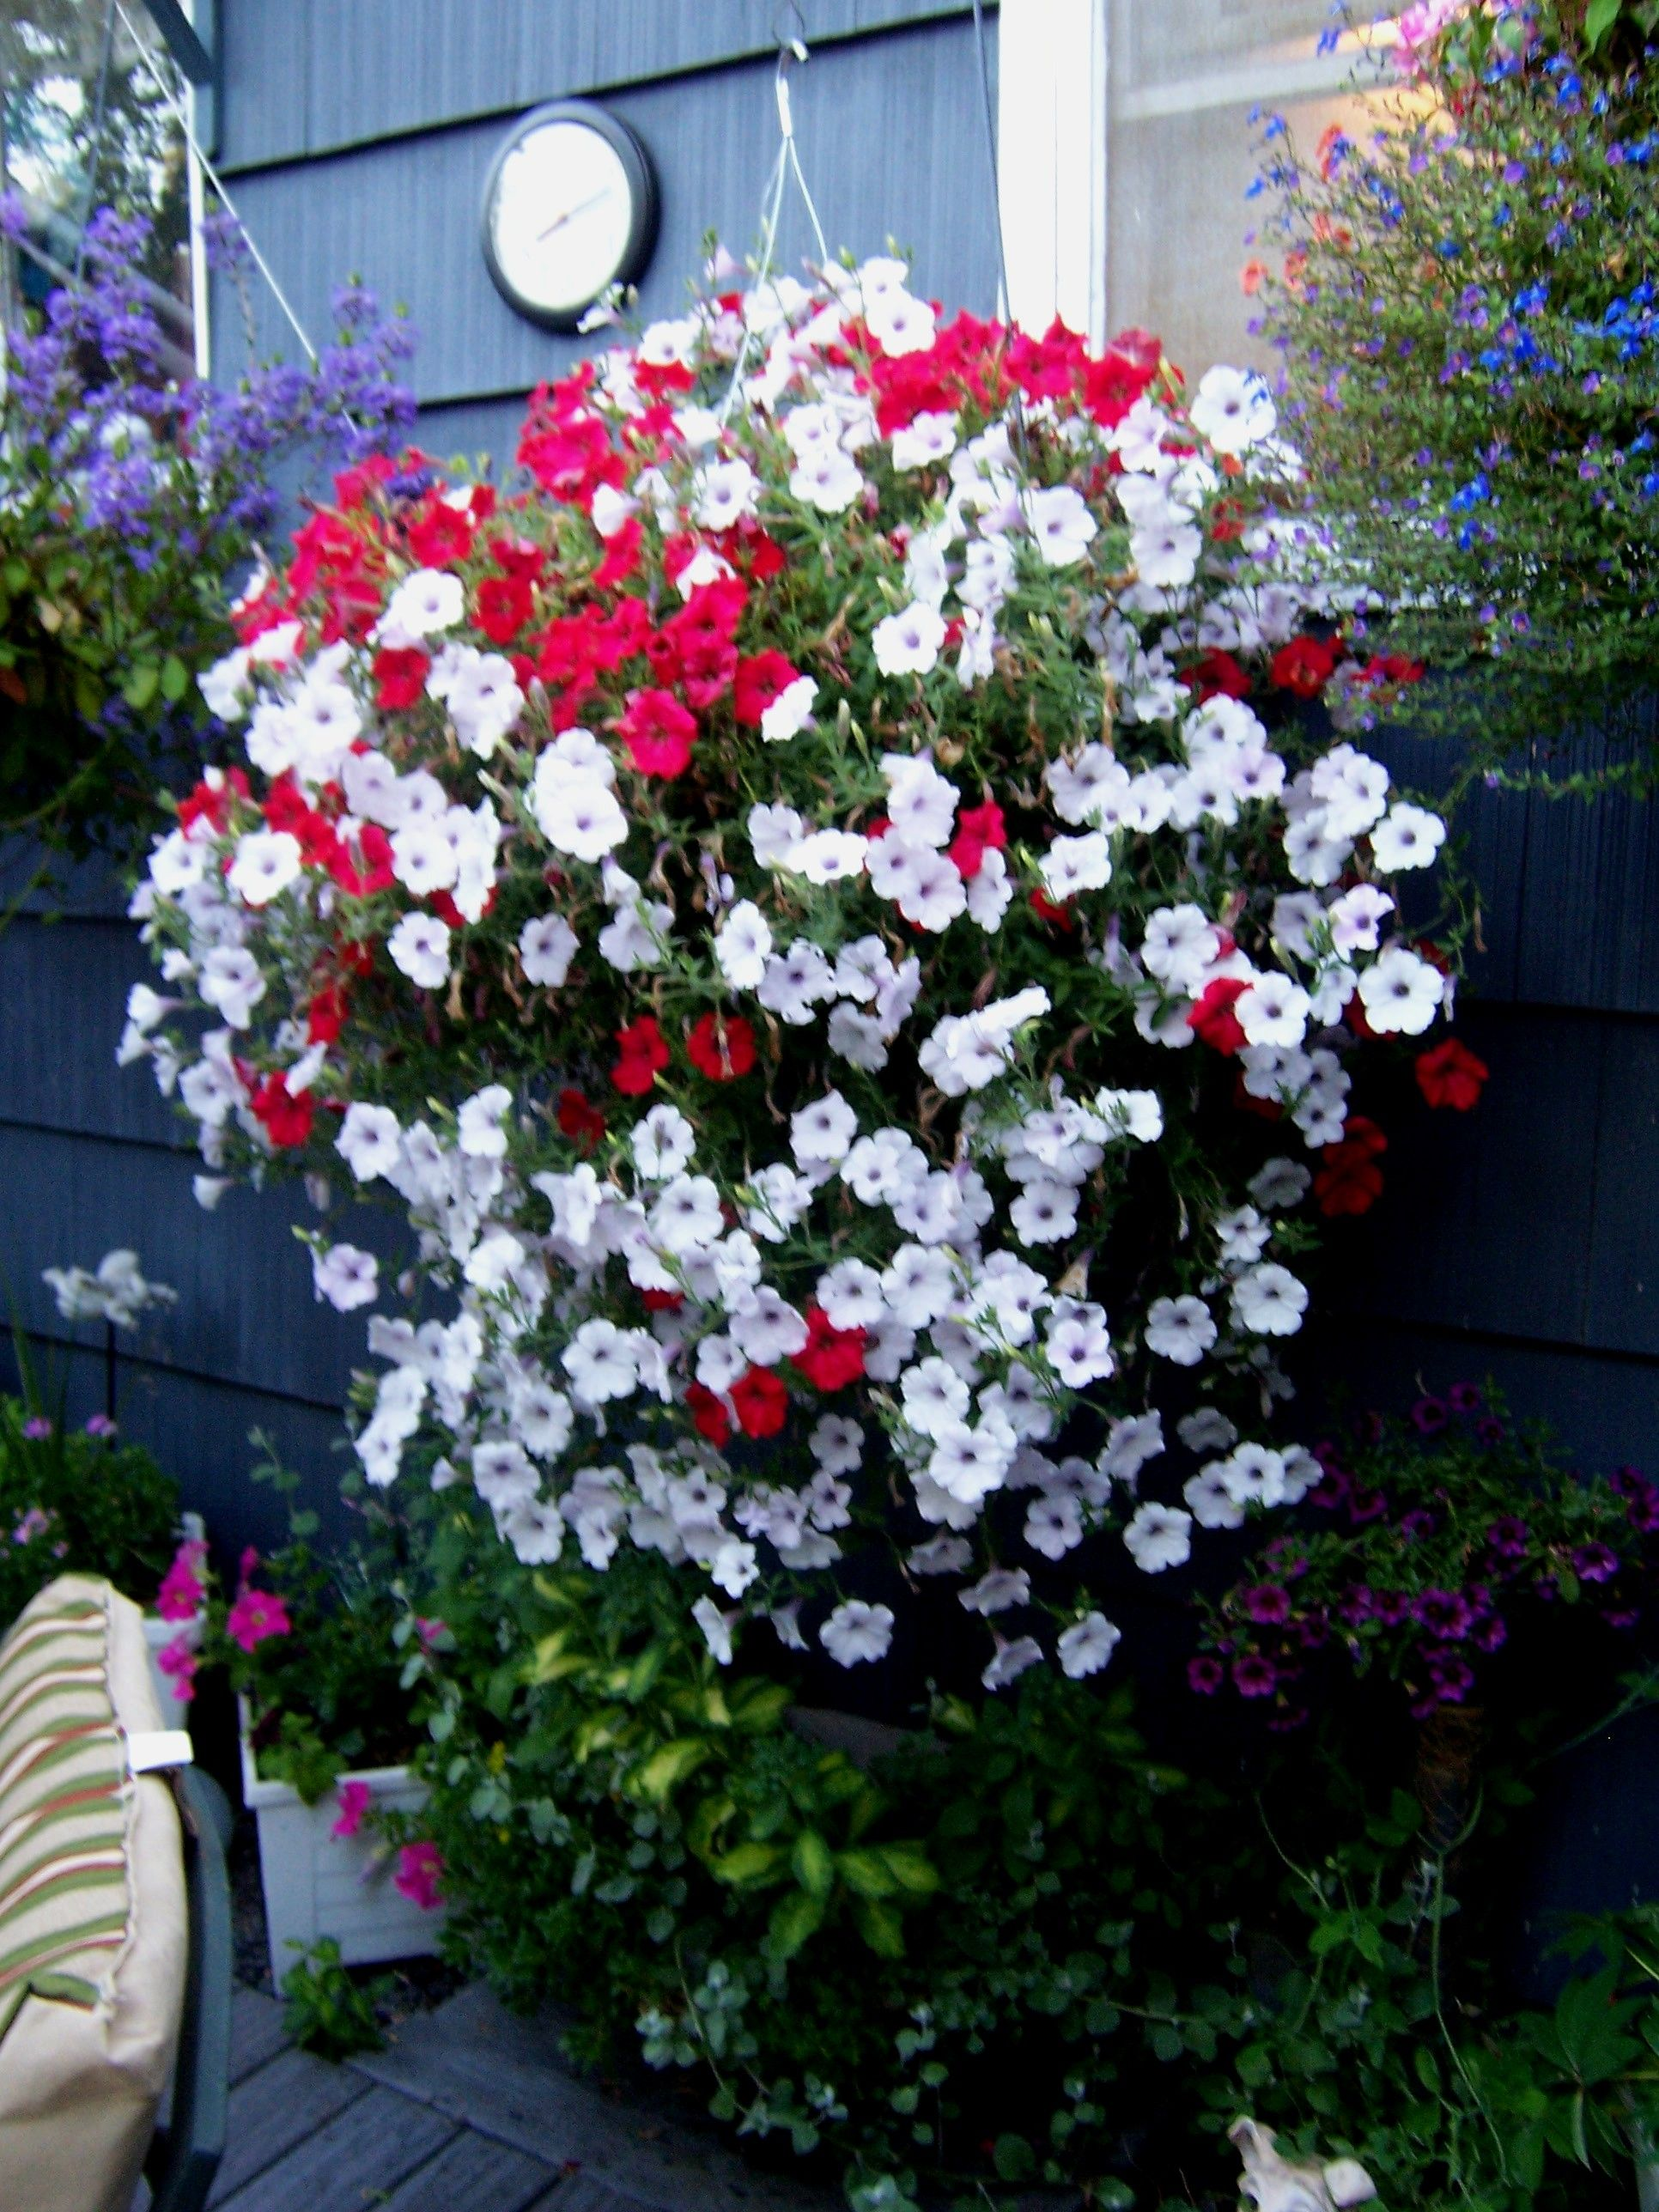 Red and White Petunia Basket For the Love of Flowers